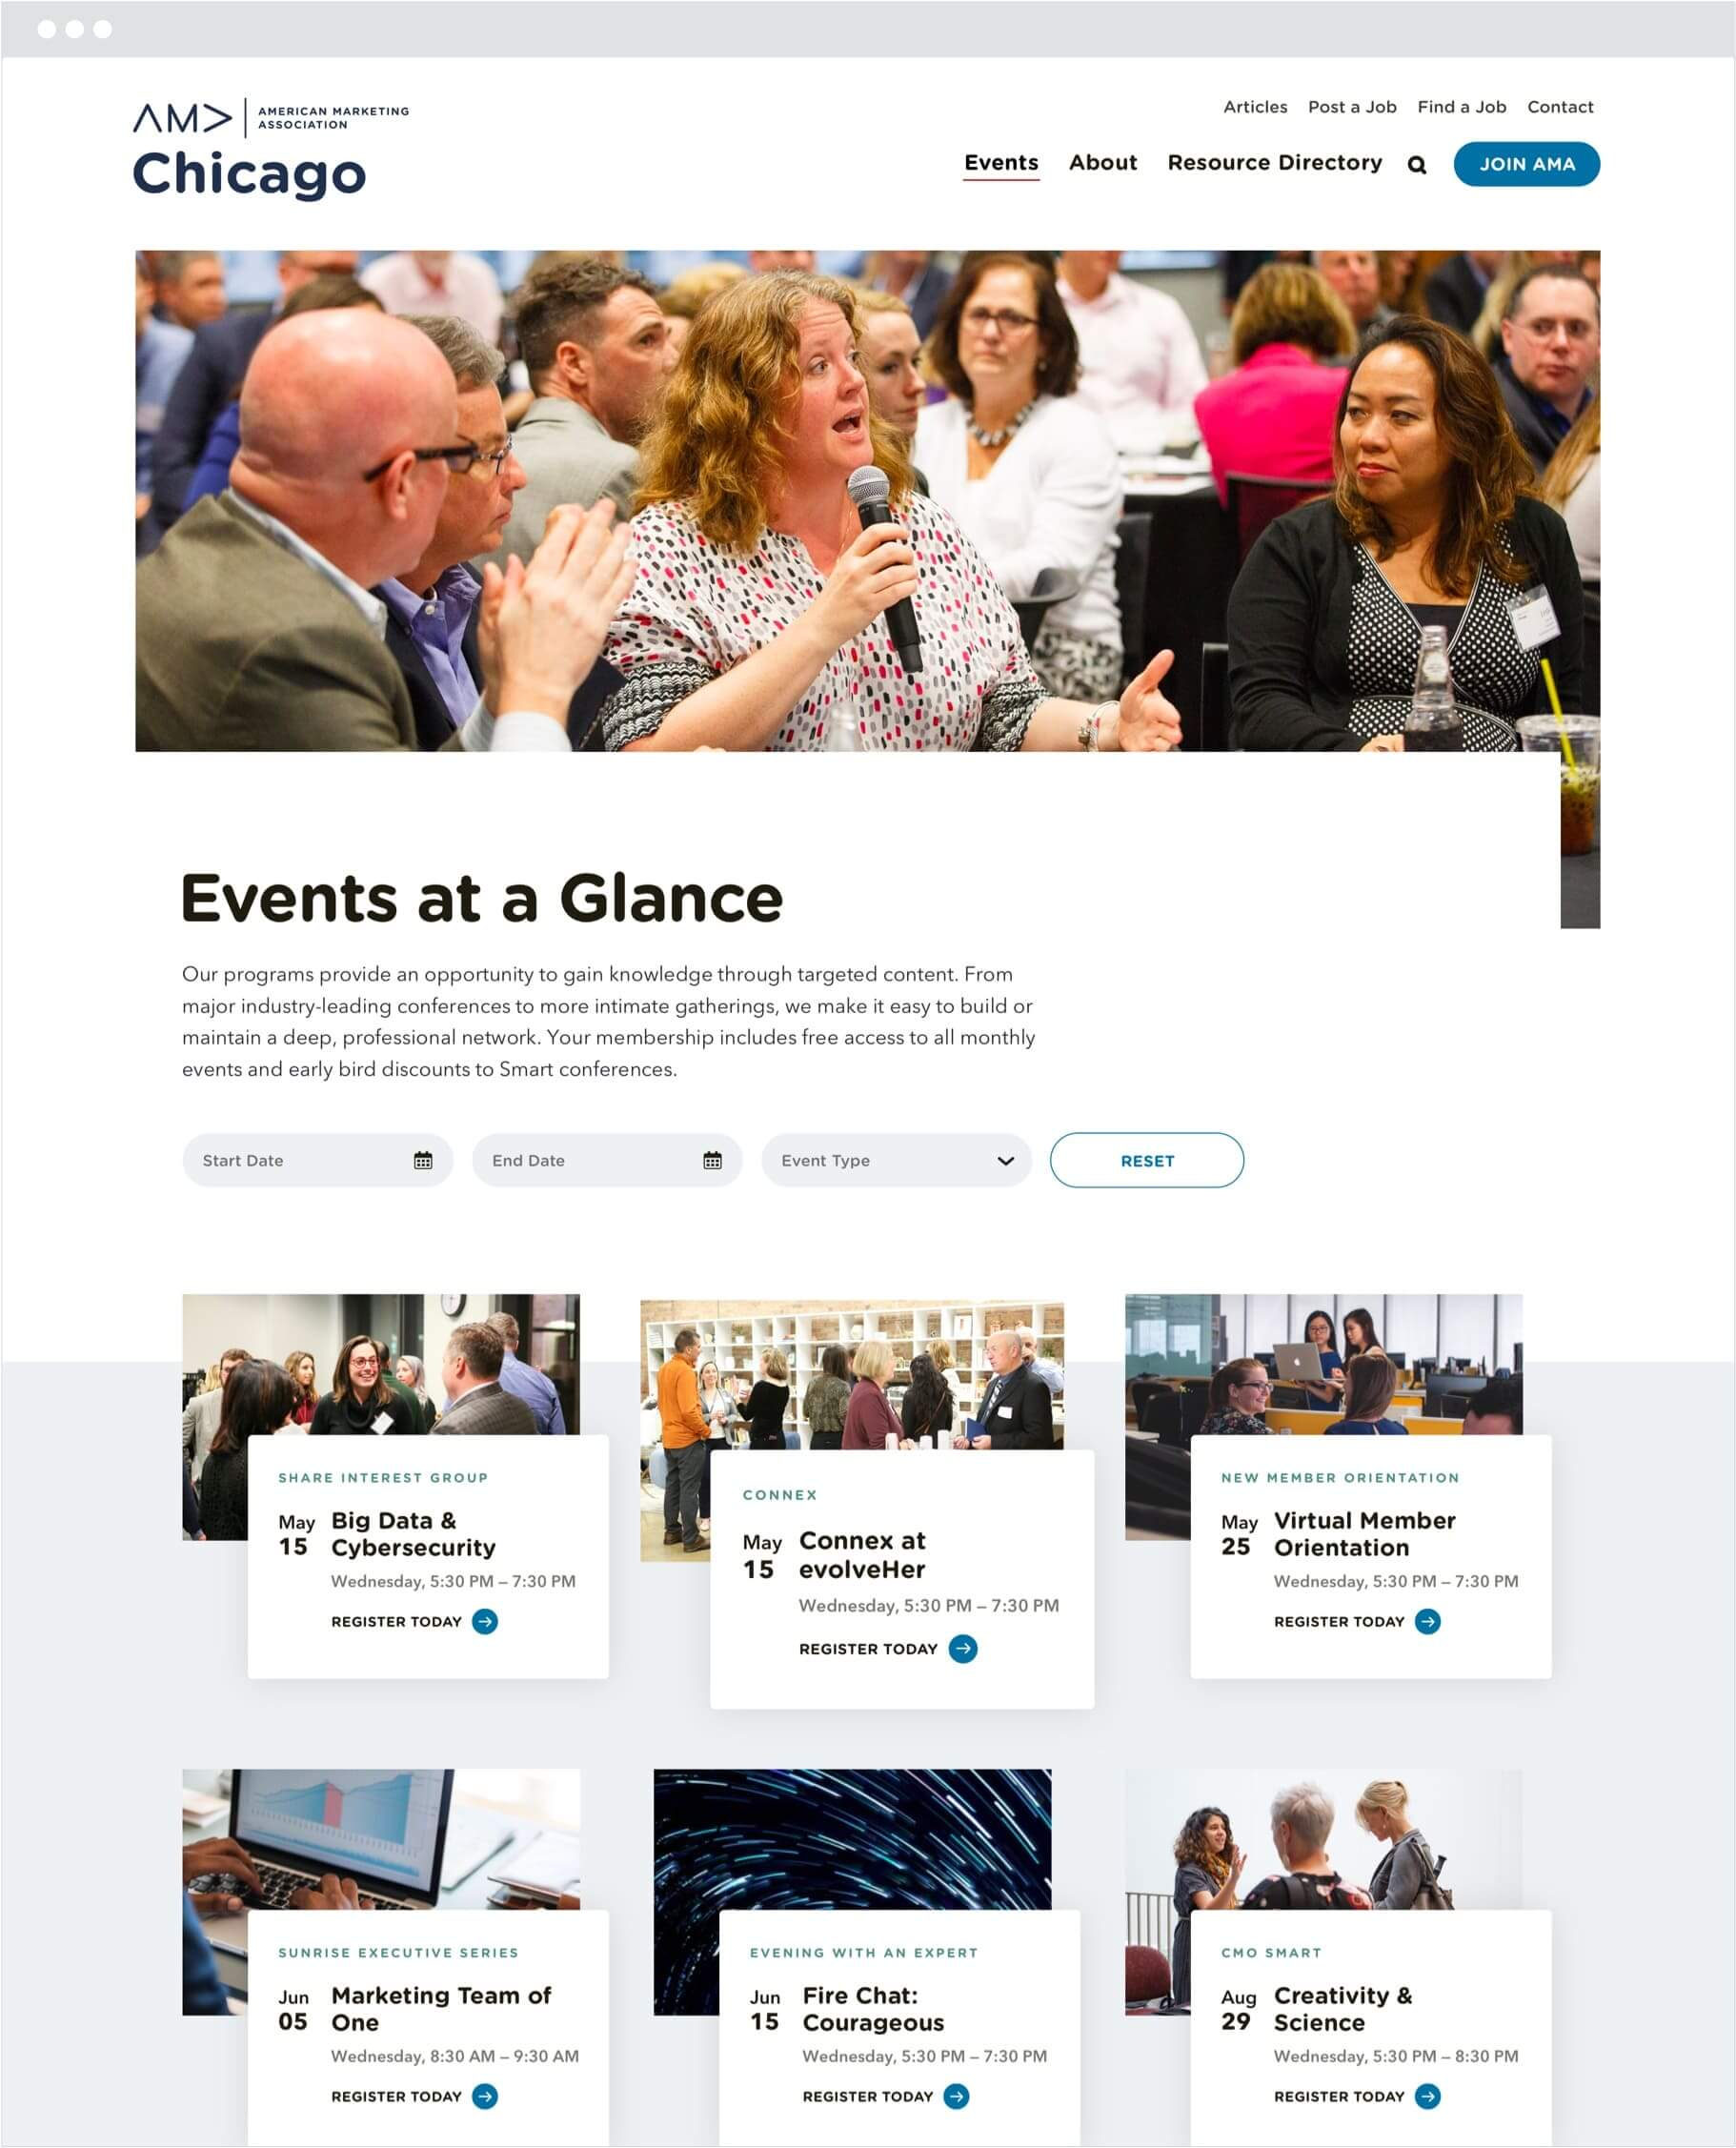 amac-event-archive-page